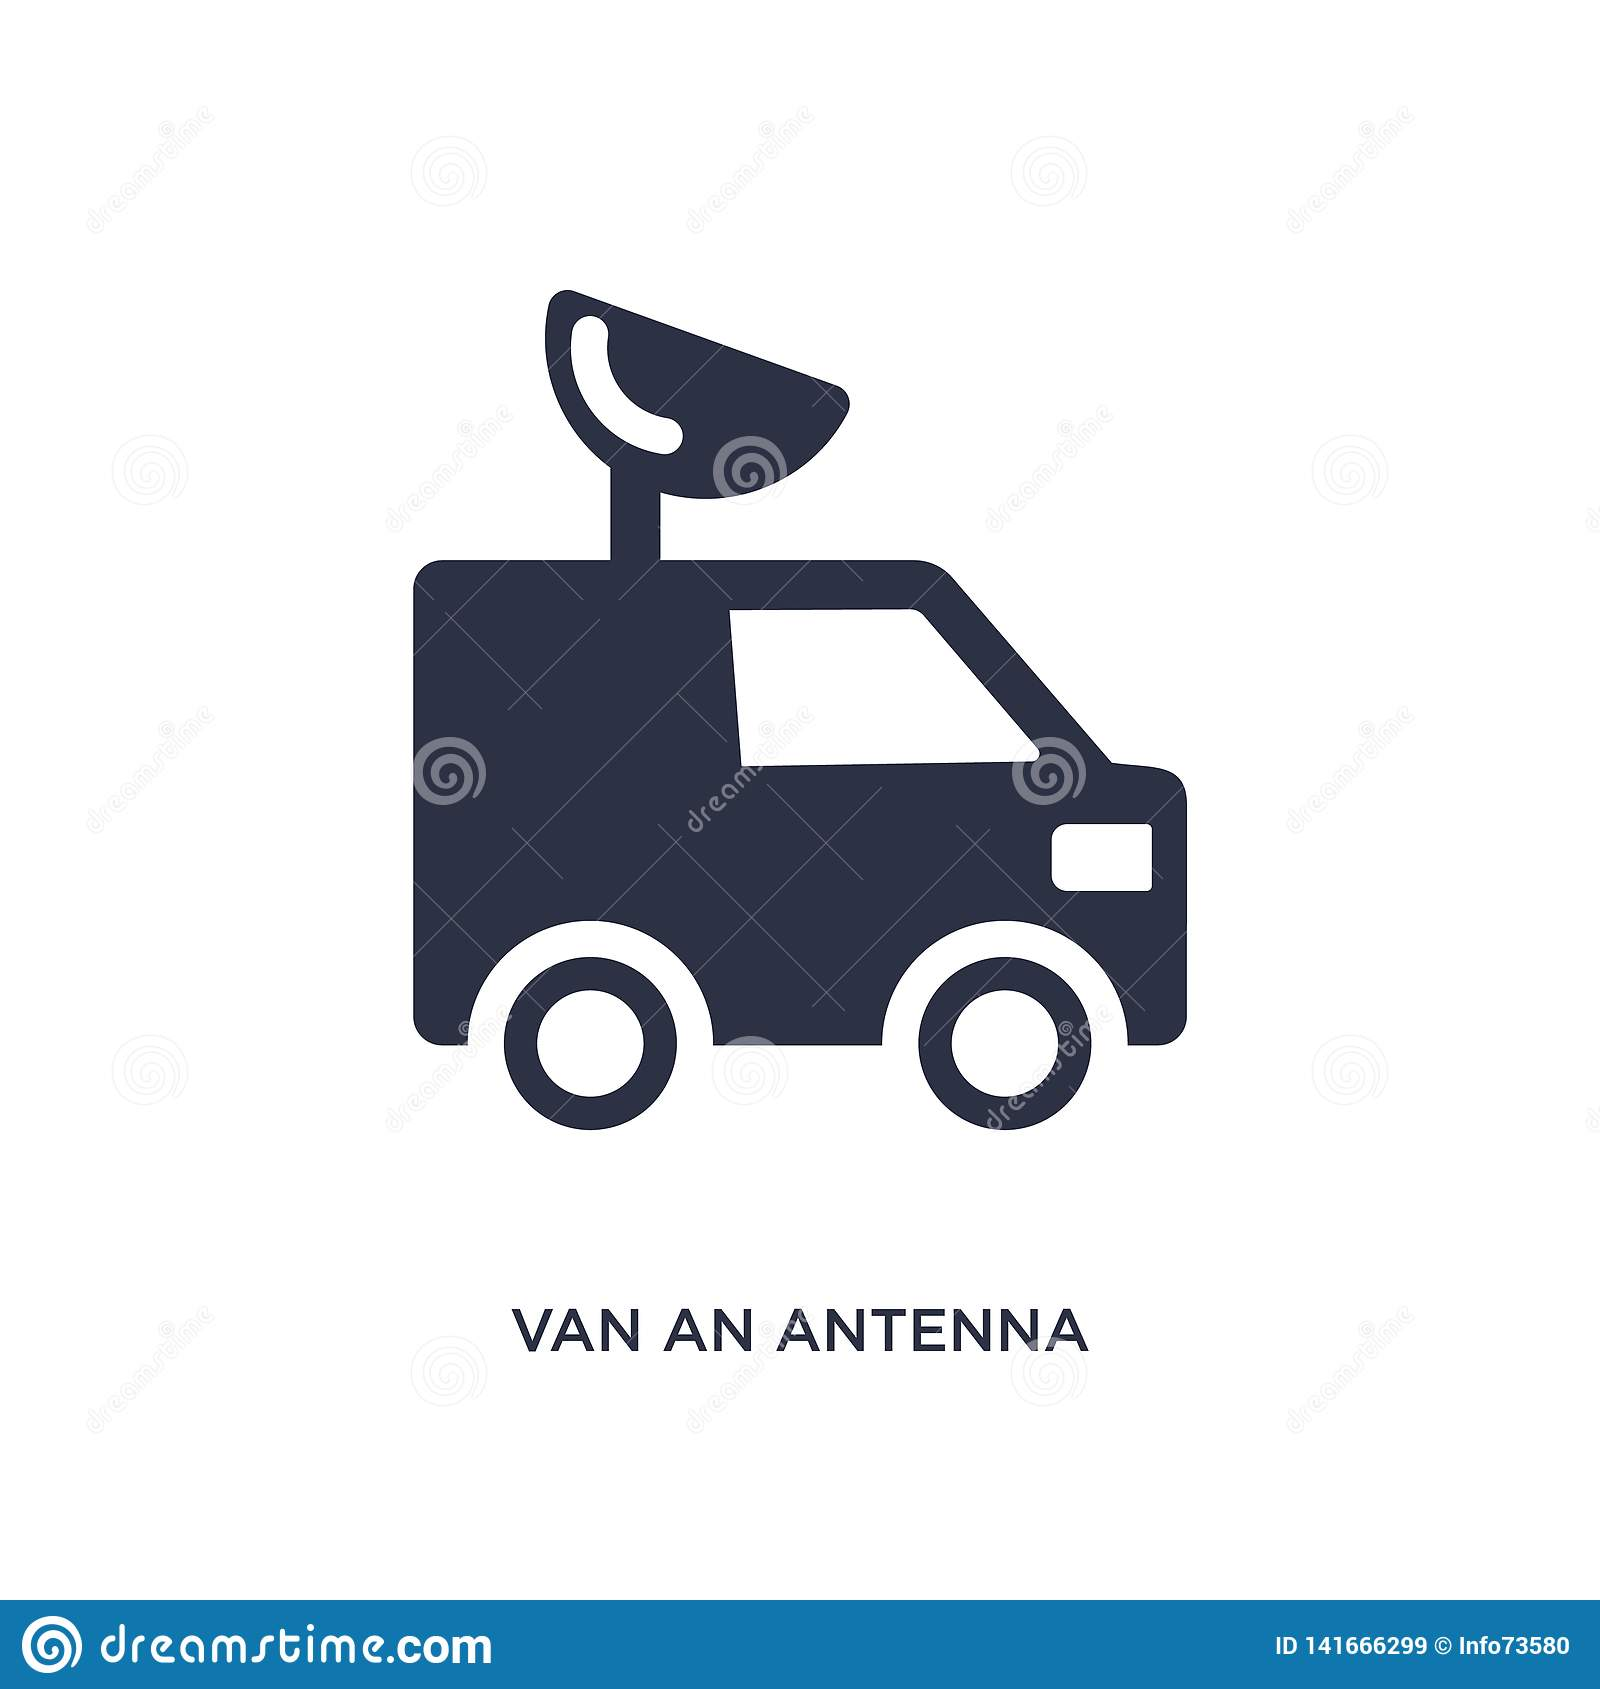 van an antenna icon on white background. Simple element illustration from mechanicons concept